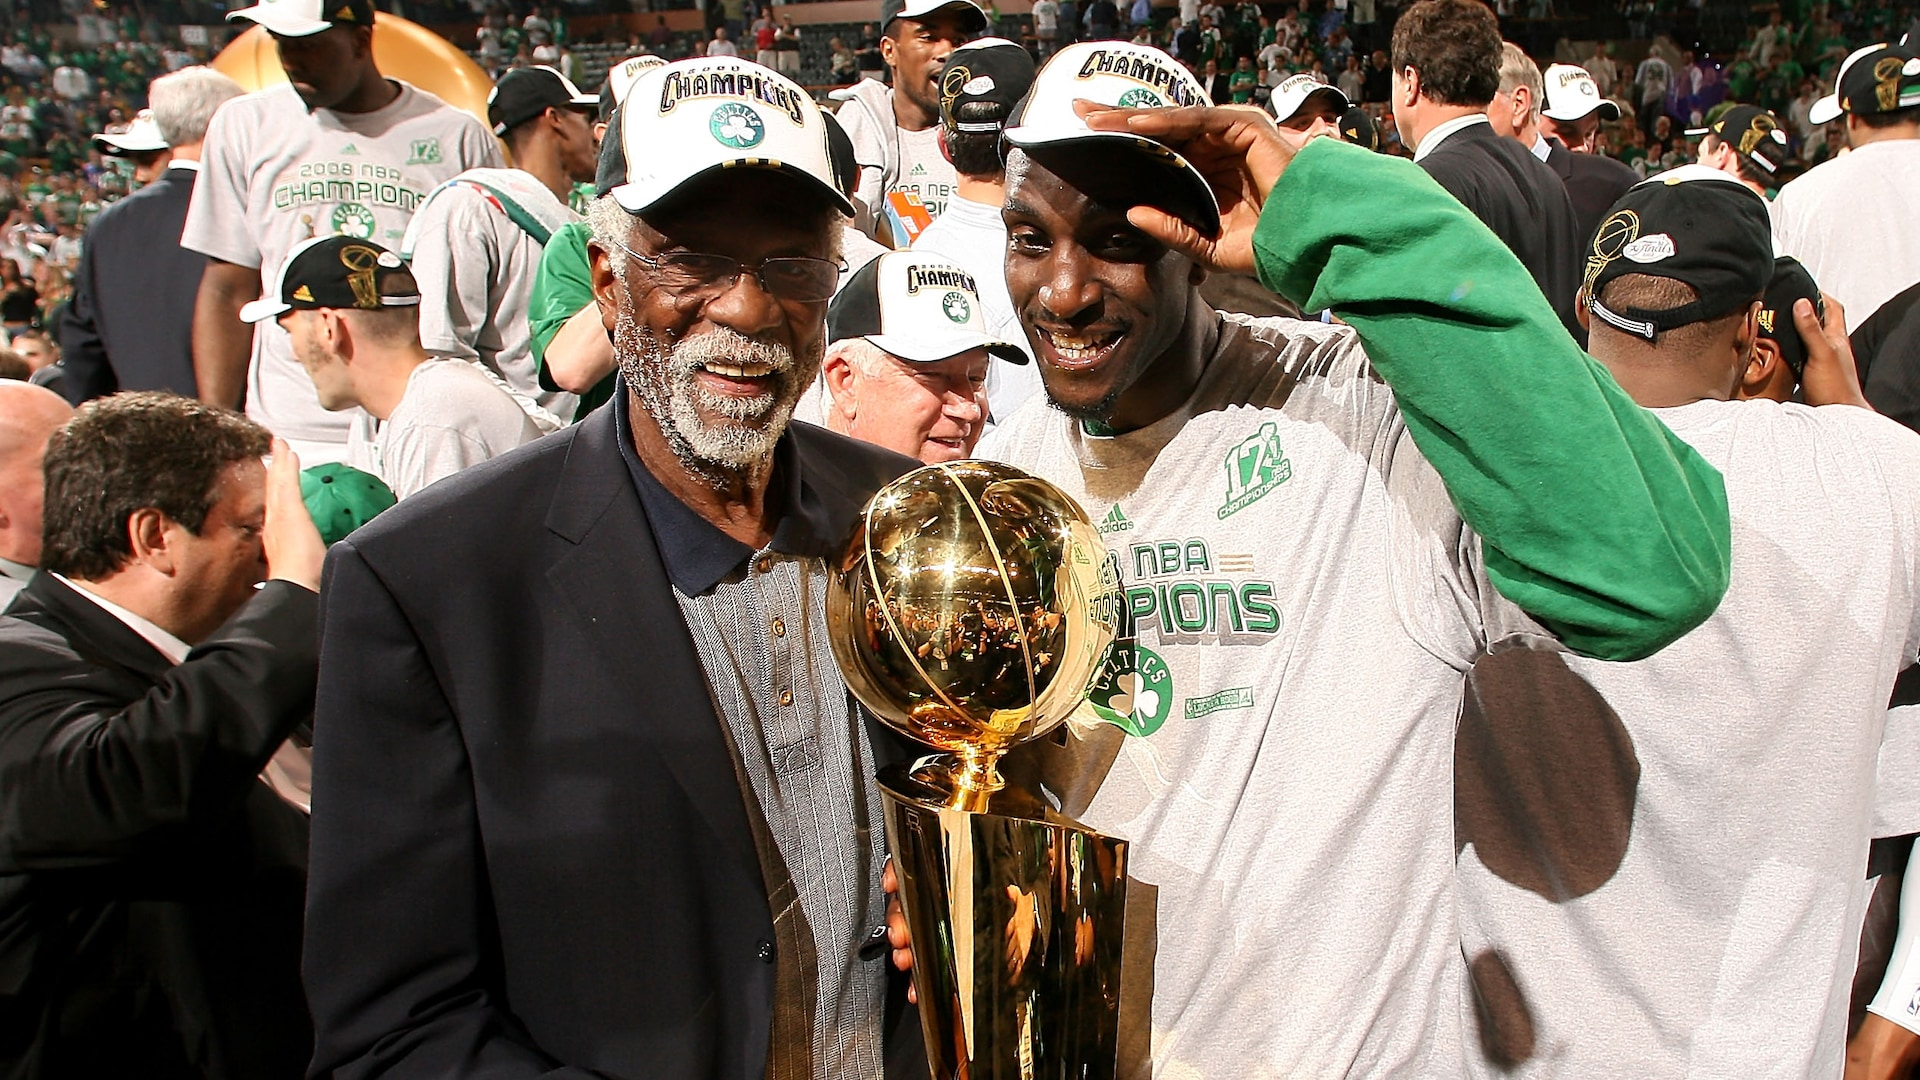 Boston Celtics announce that Kevin Garnett's number will be retired